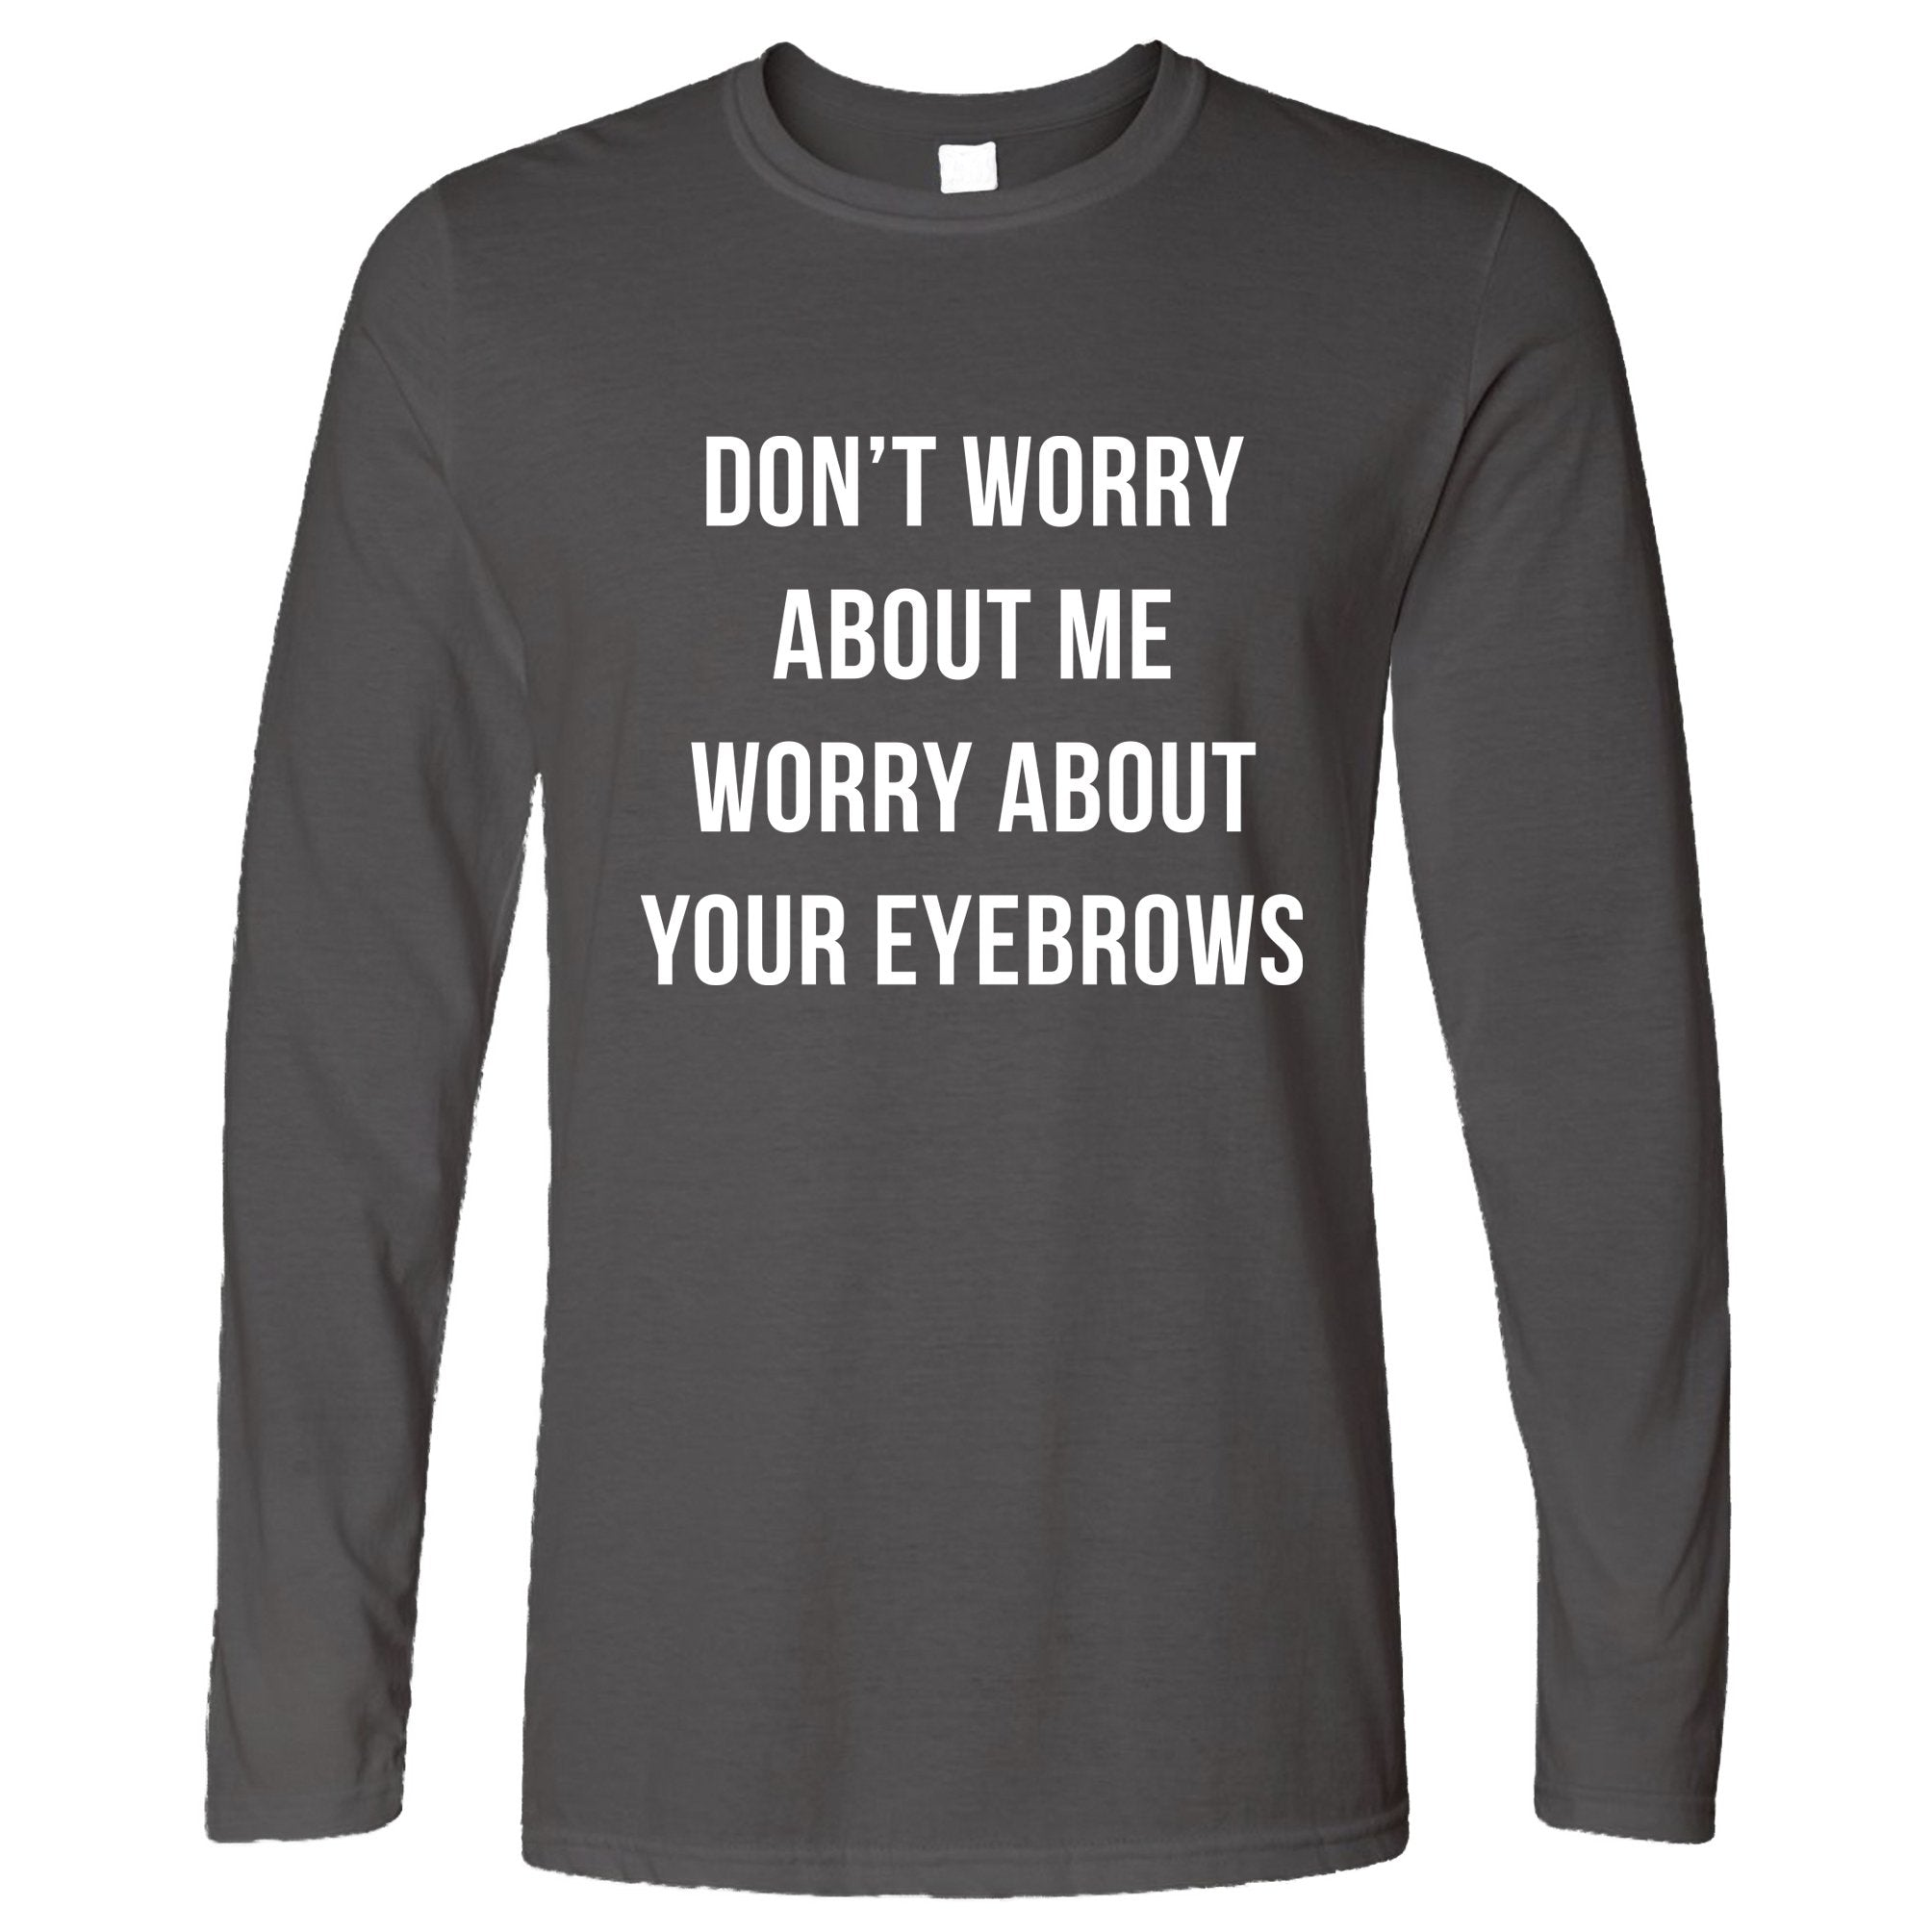 Novelty Sassy Long Sleeve Worry About Your Eyebrows Joke T-Shirt